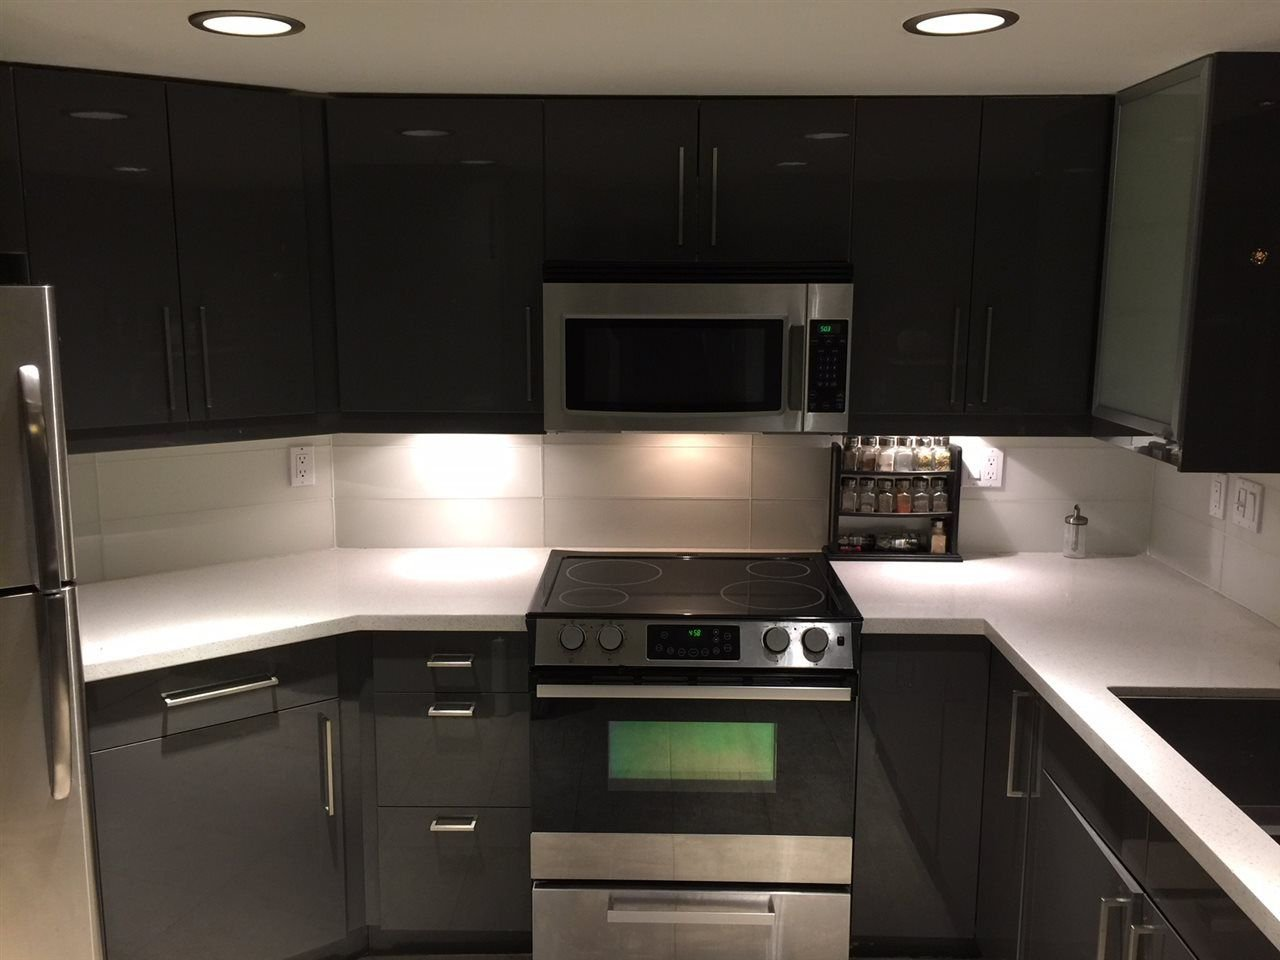 """Photo 19: Photos: 304 183 KEEFER Place in Vancouver: Downtown VW Condo for sale in """"PARIS PLACE"""" (Vancouver West)  : MLS®# R2212938"""